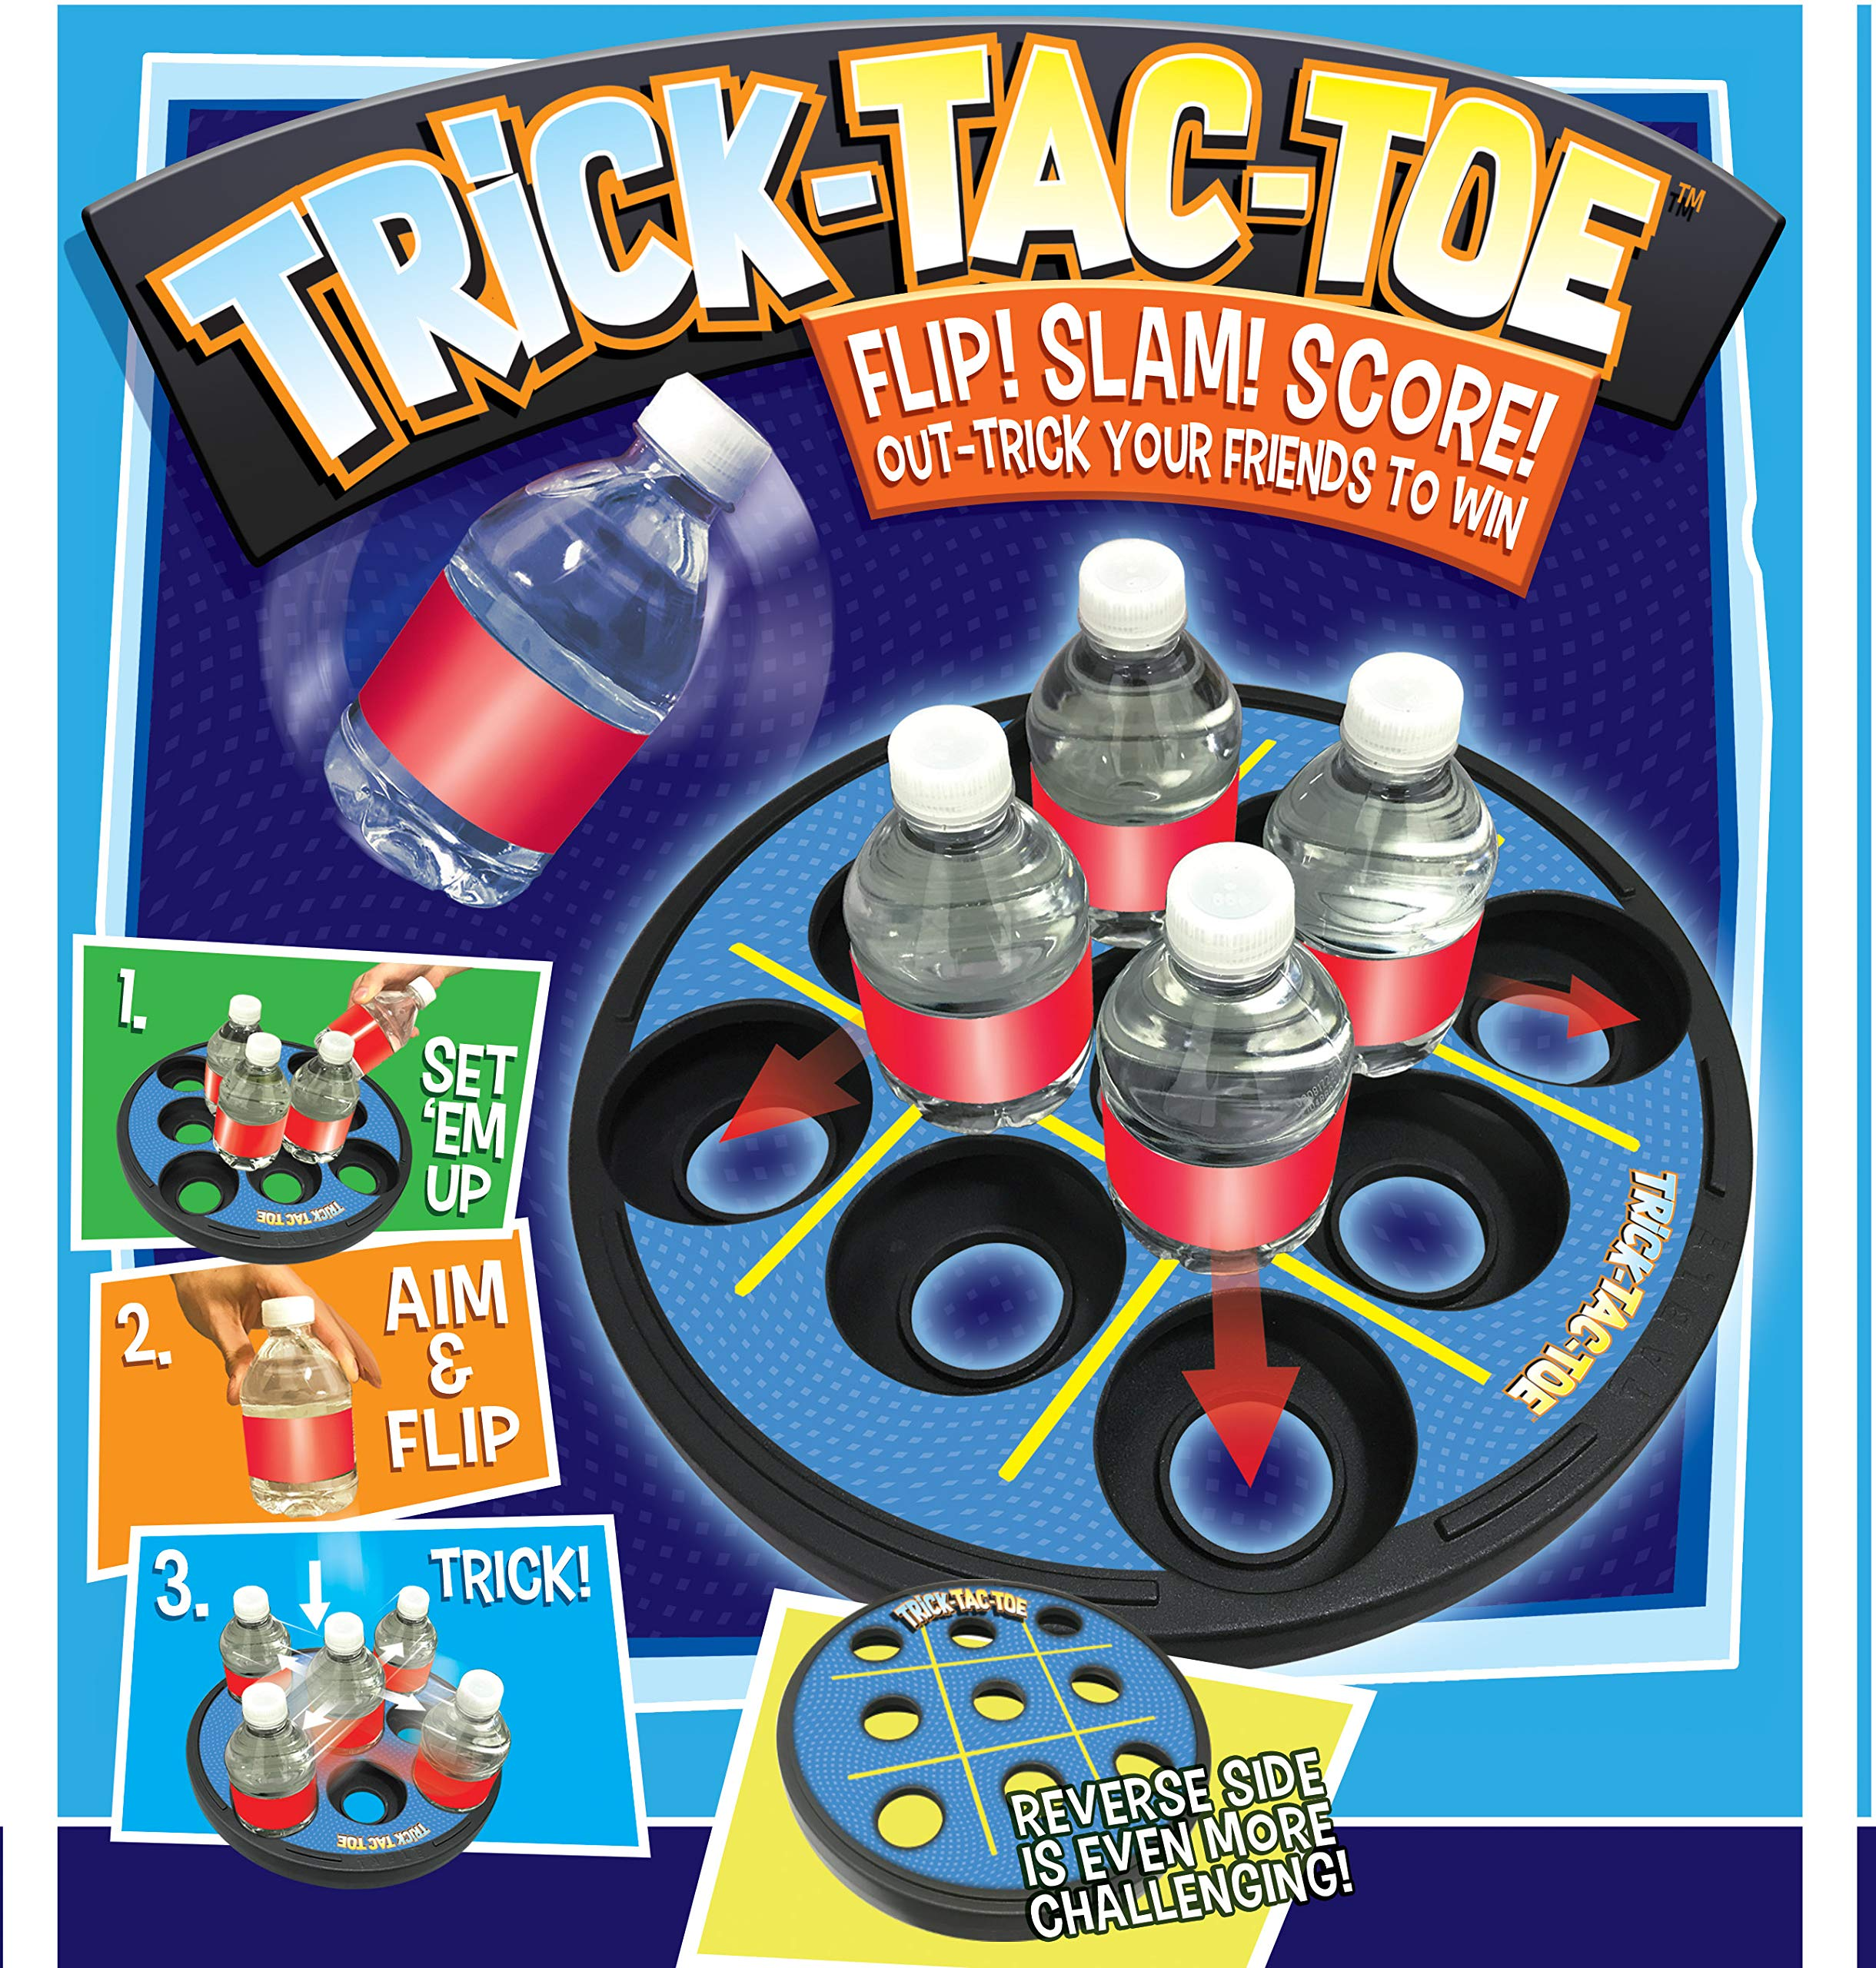 Trick-Tac-Toe Bottle Flipping Game for Indoors, Tailgate or Backyard by Cortex Toys by The FlipTable